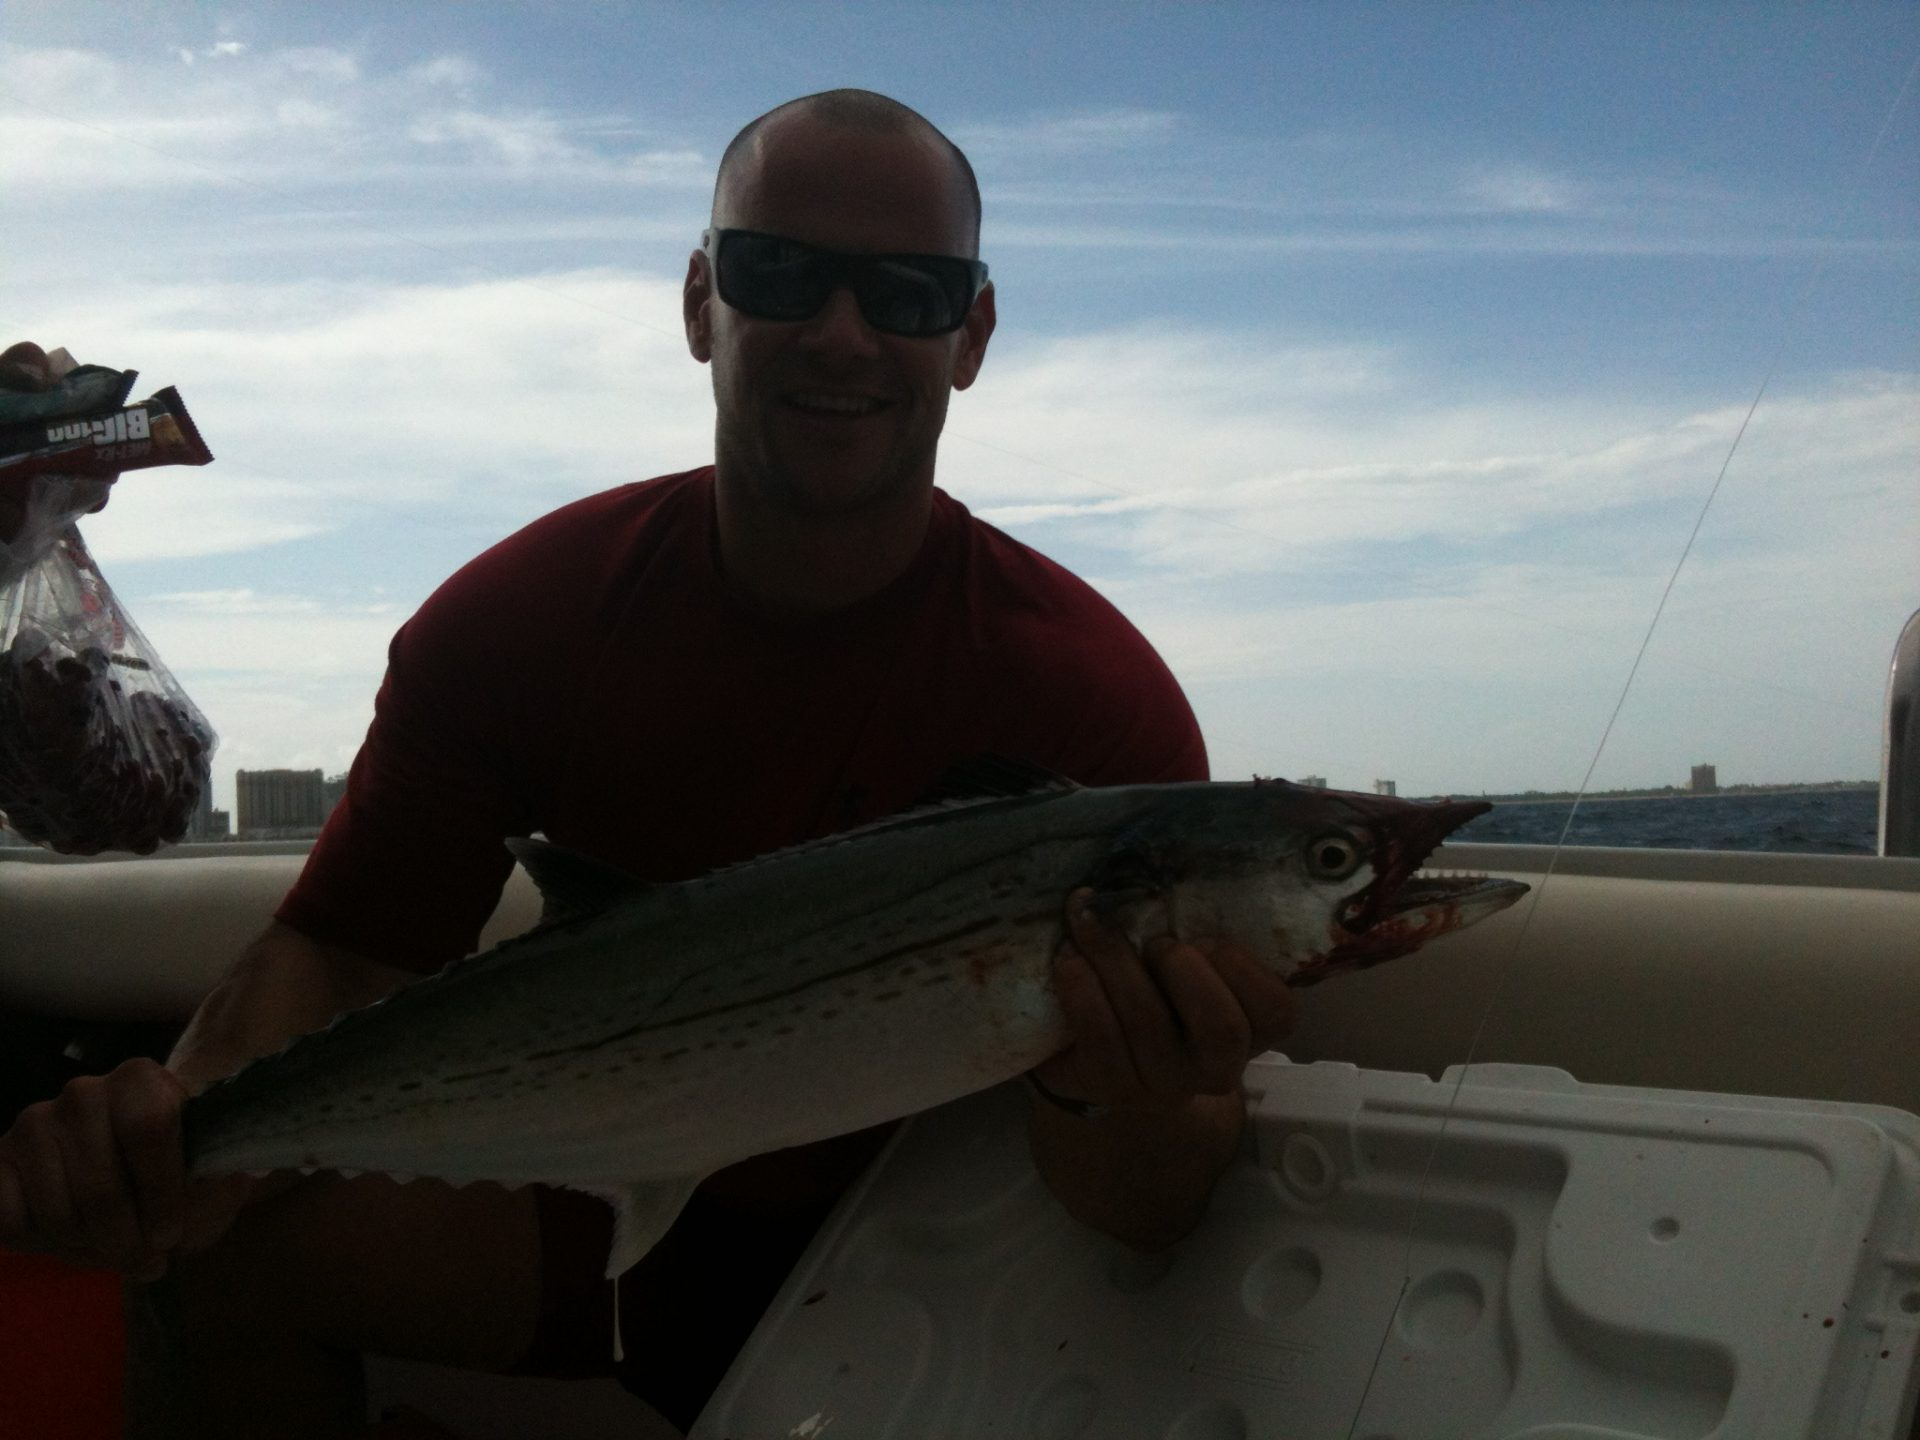 Cero Mackerel off Fort Lauderdale